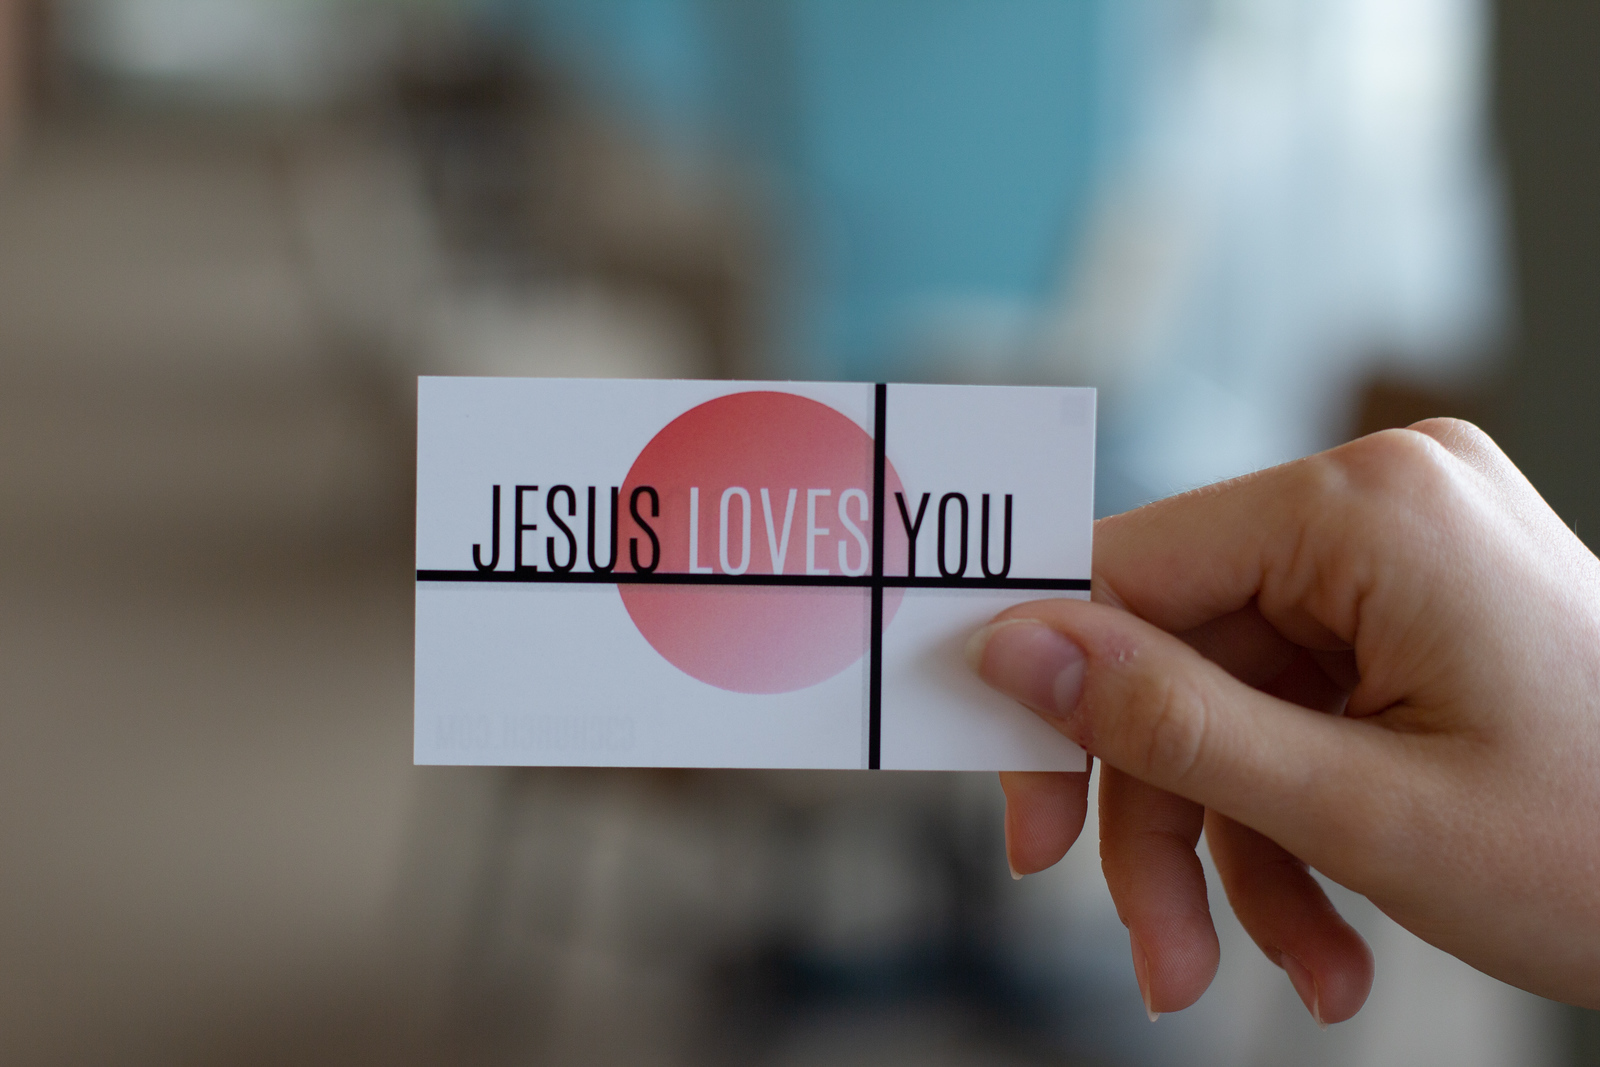 19-08-06 Jesus Loves You card